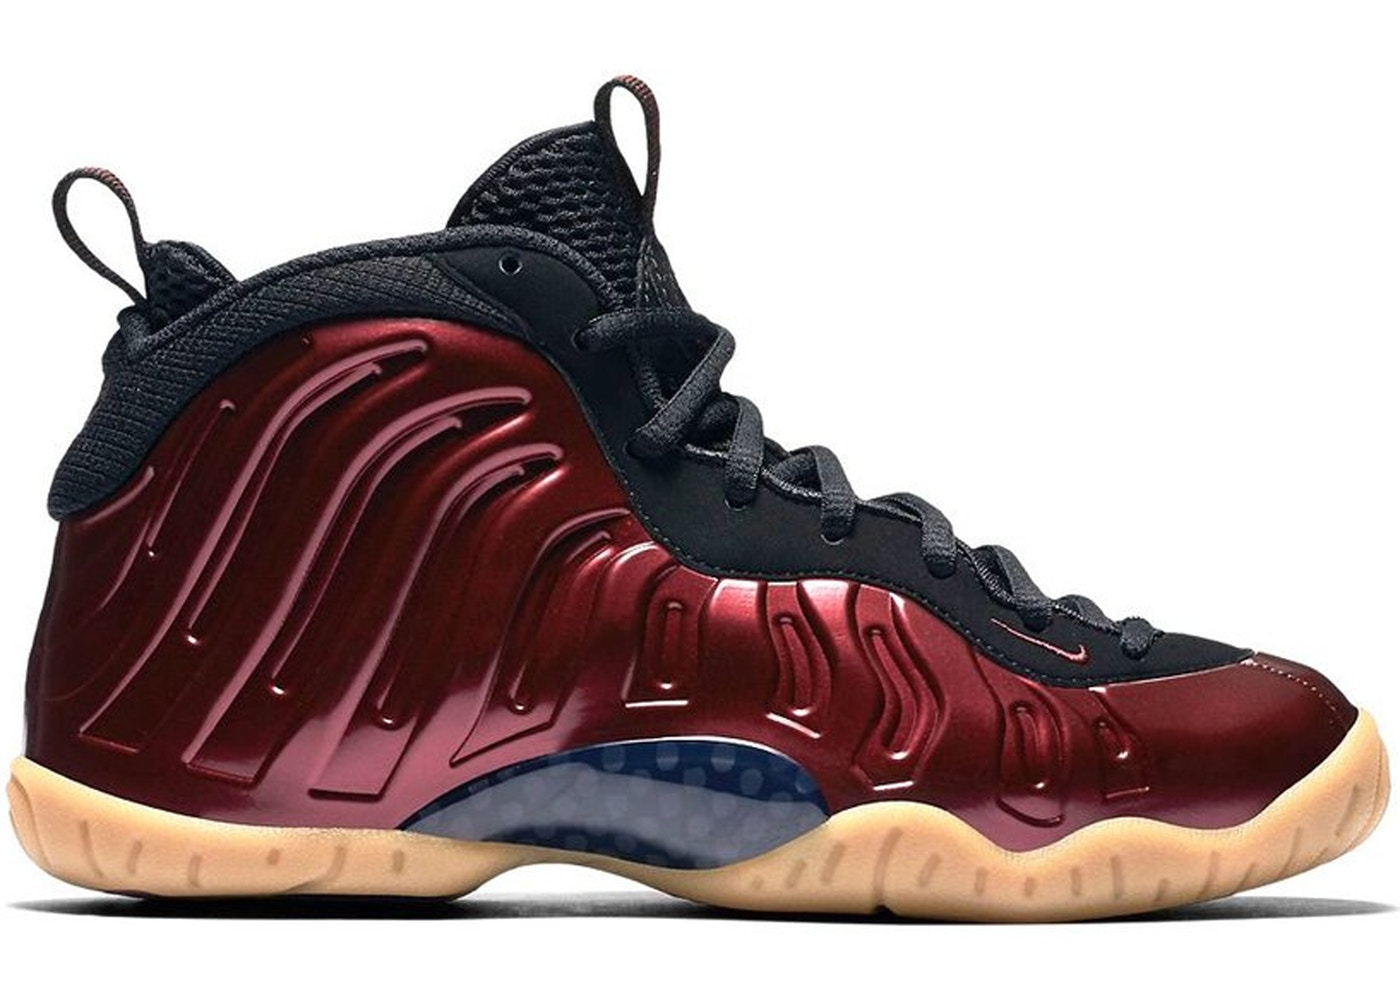 ebdddd82e1c Air Foamposite One Maroon (GS) - 644791-600